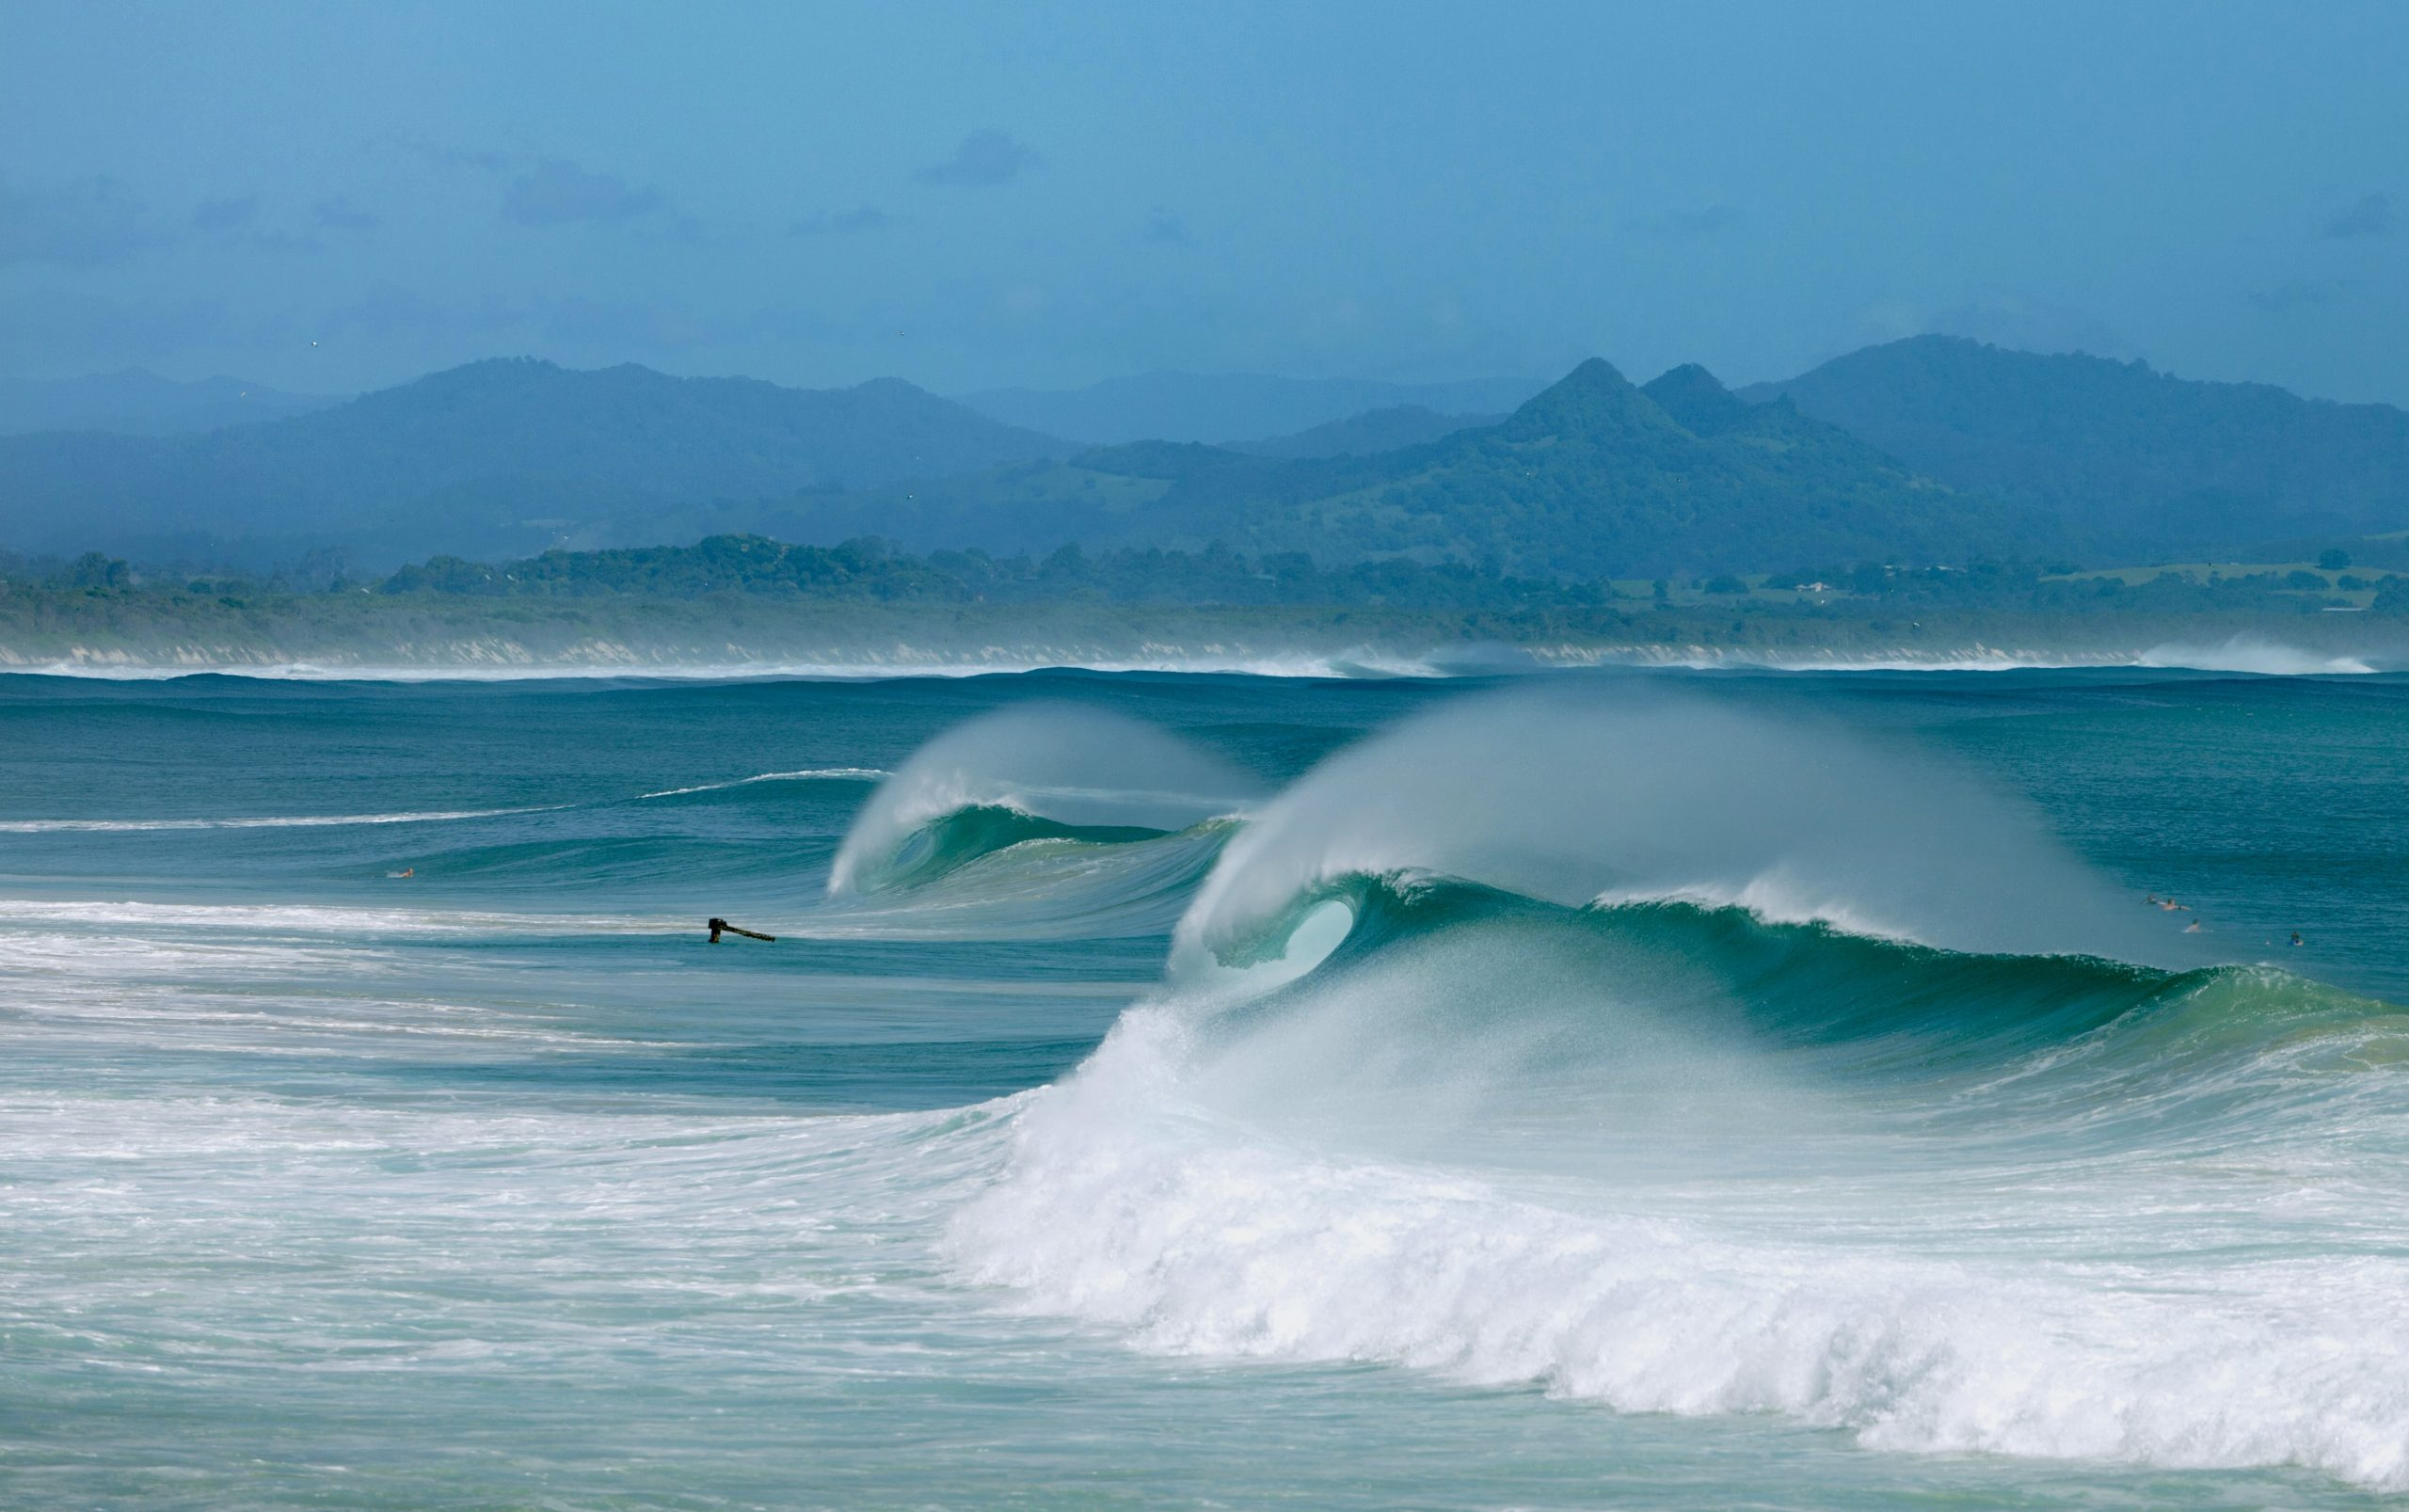 surfing spots in Byron Bay